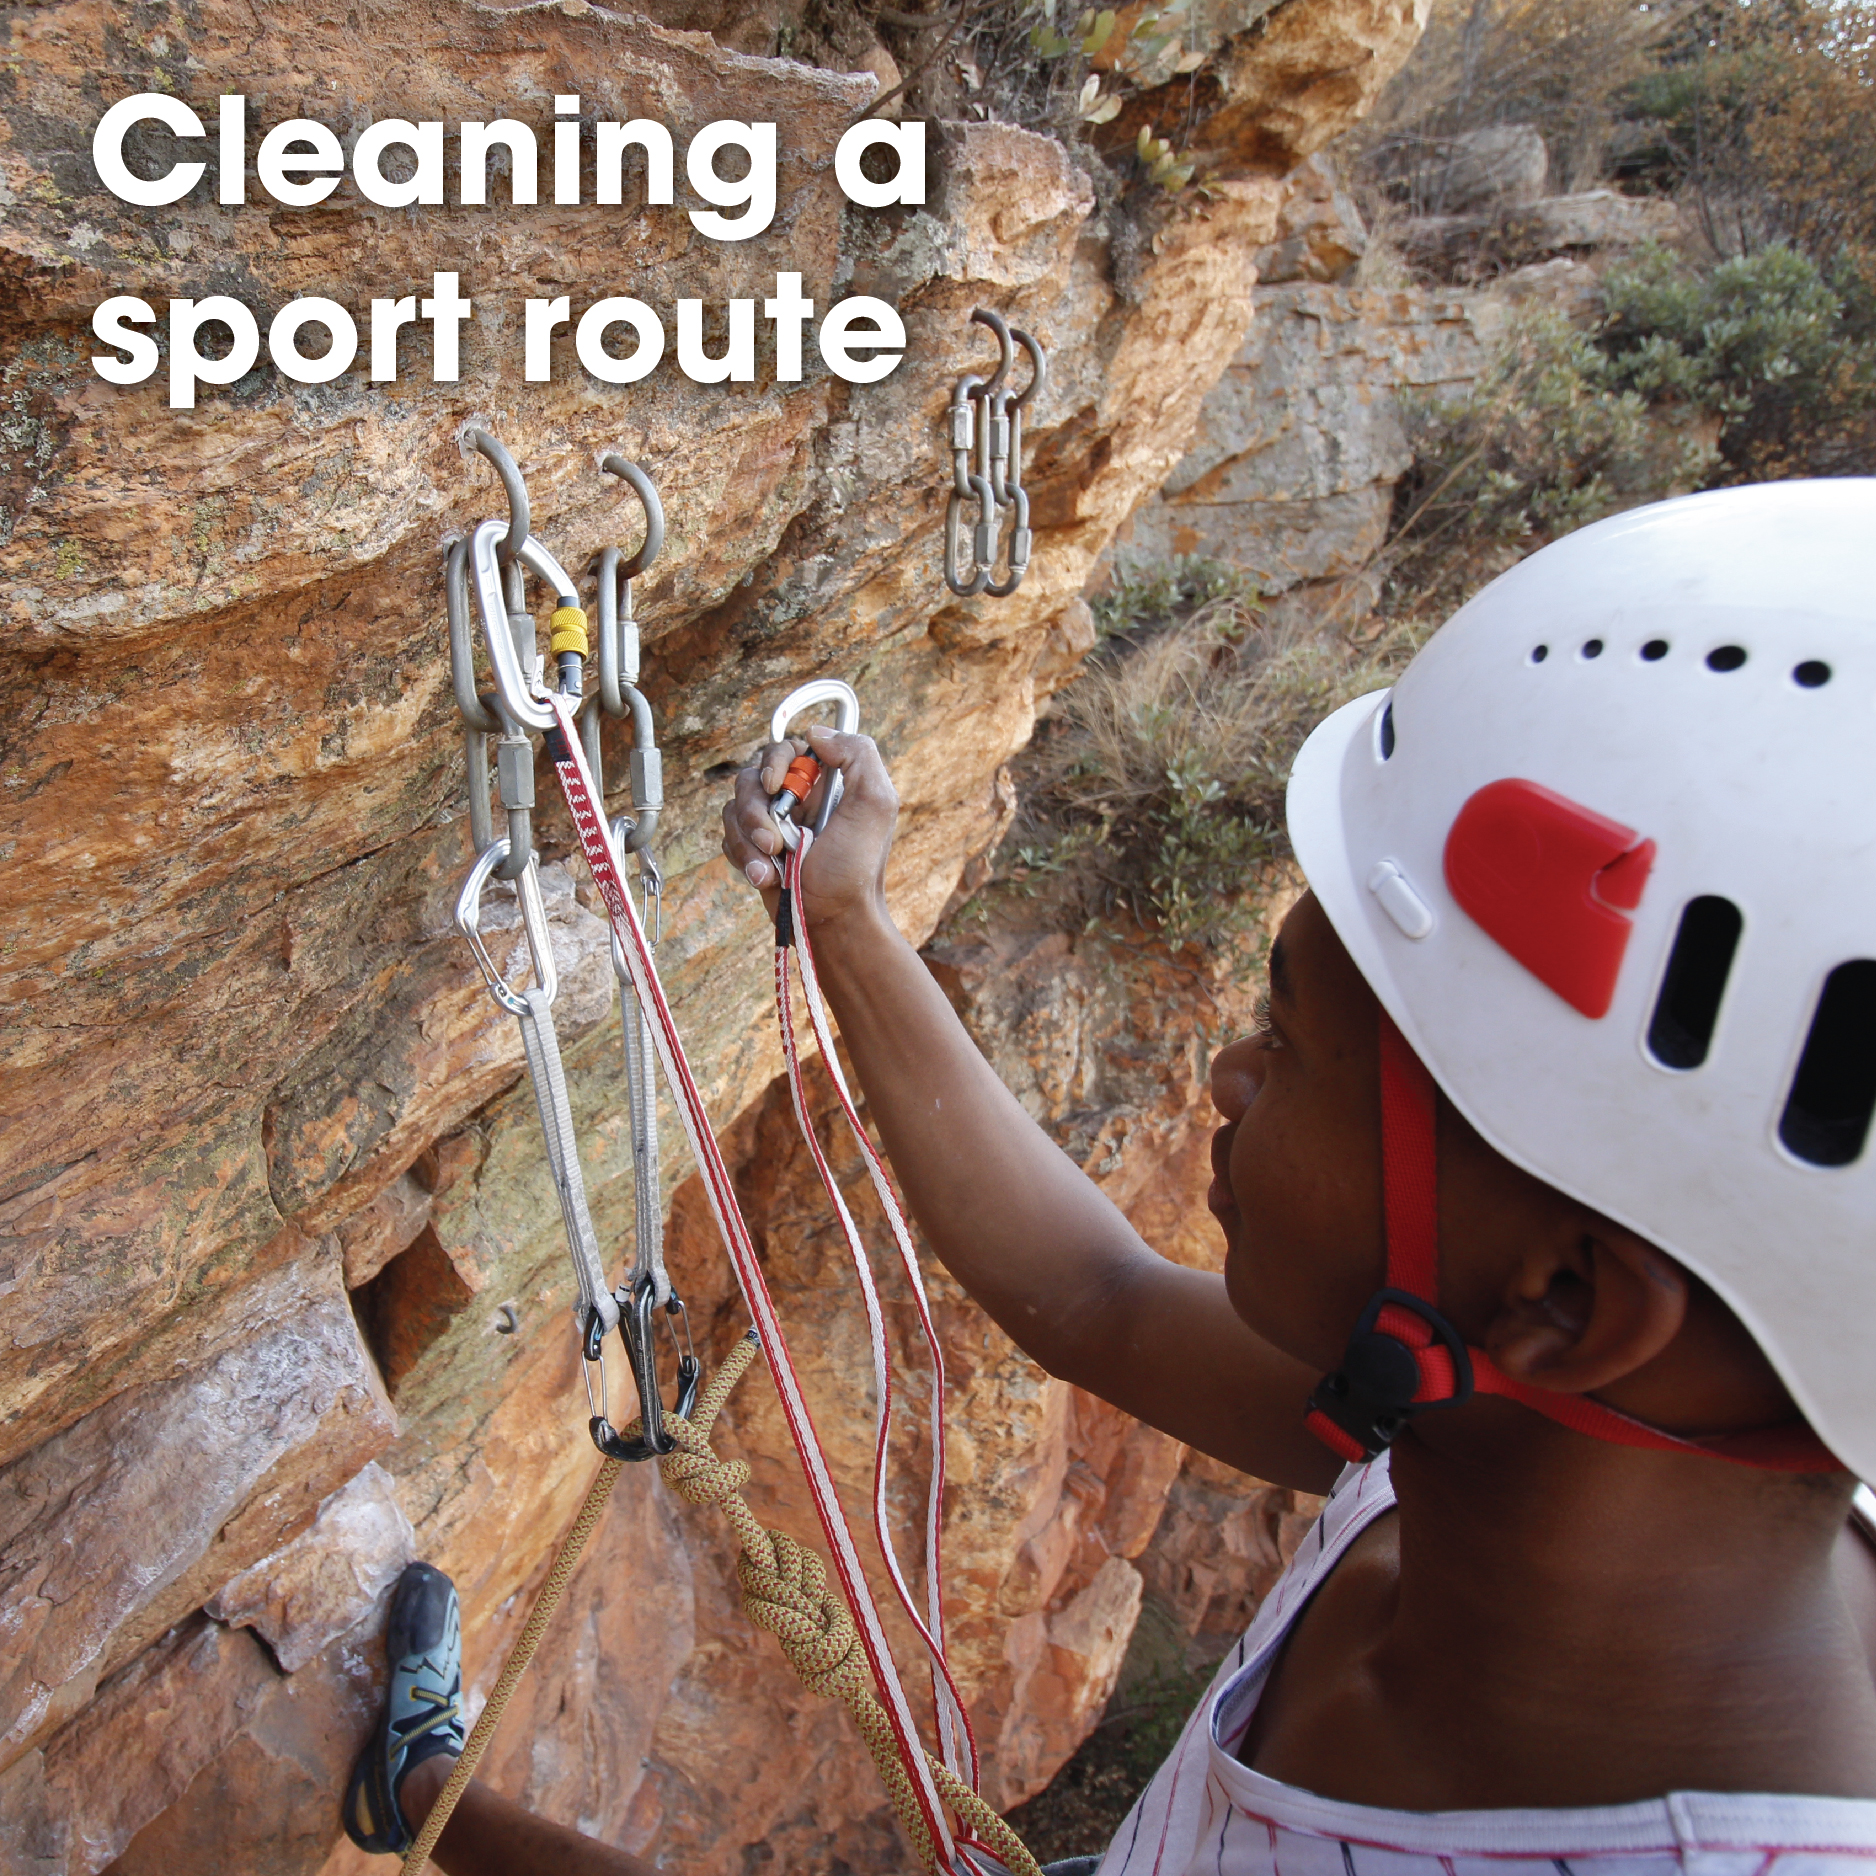 Cleaning a sport route